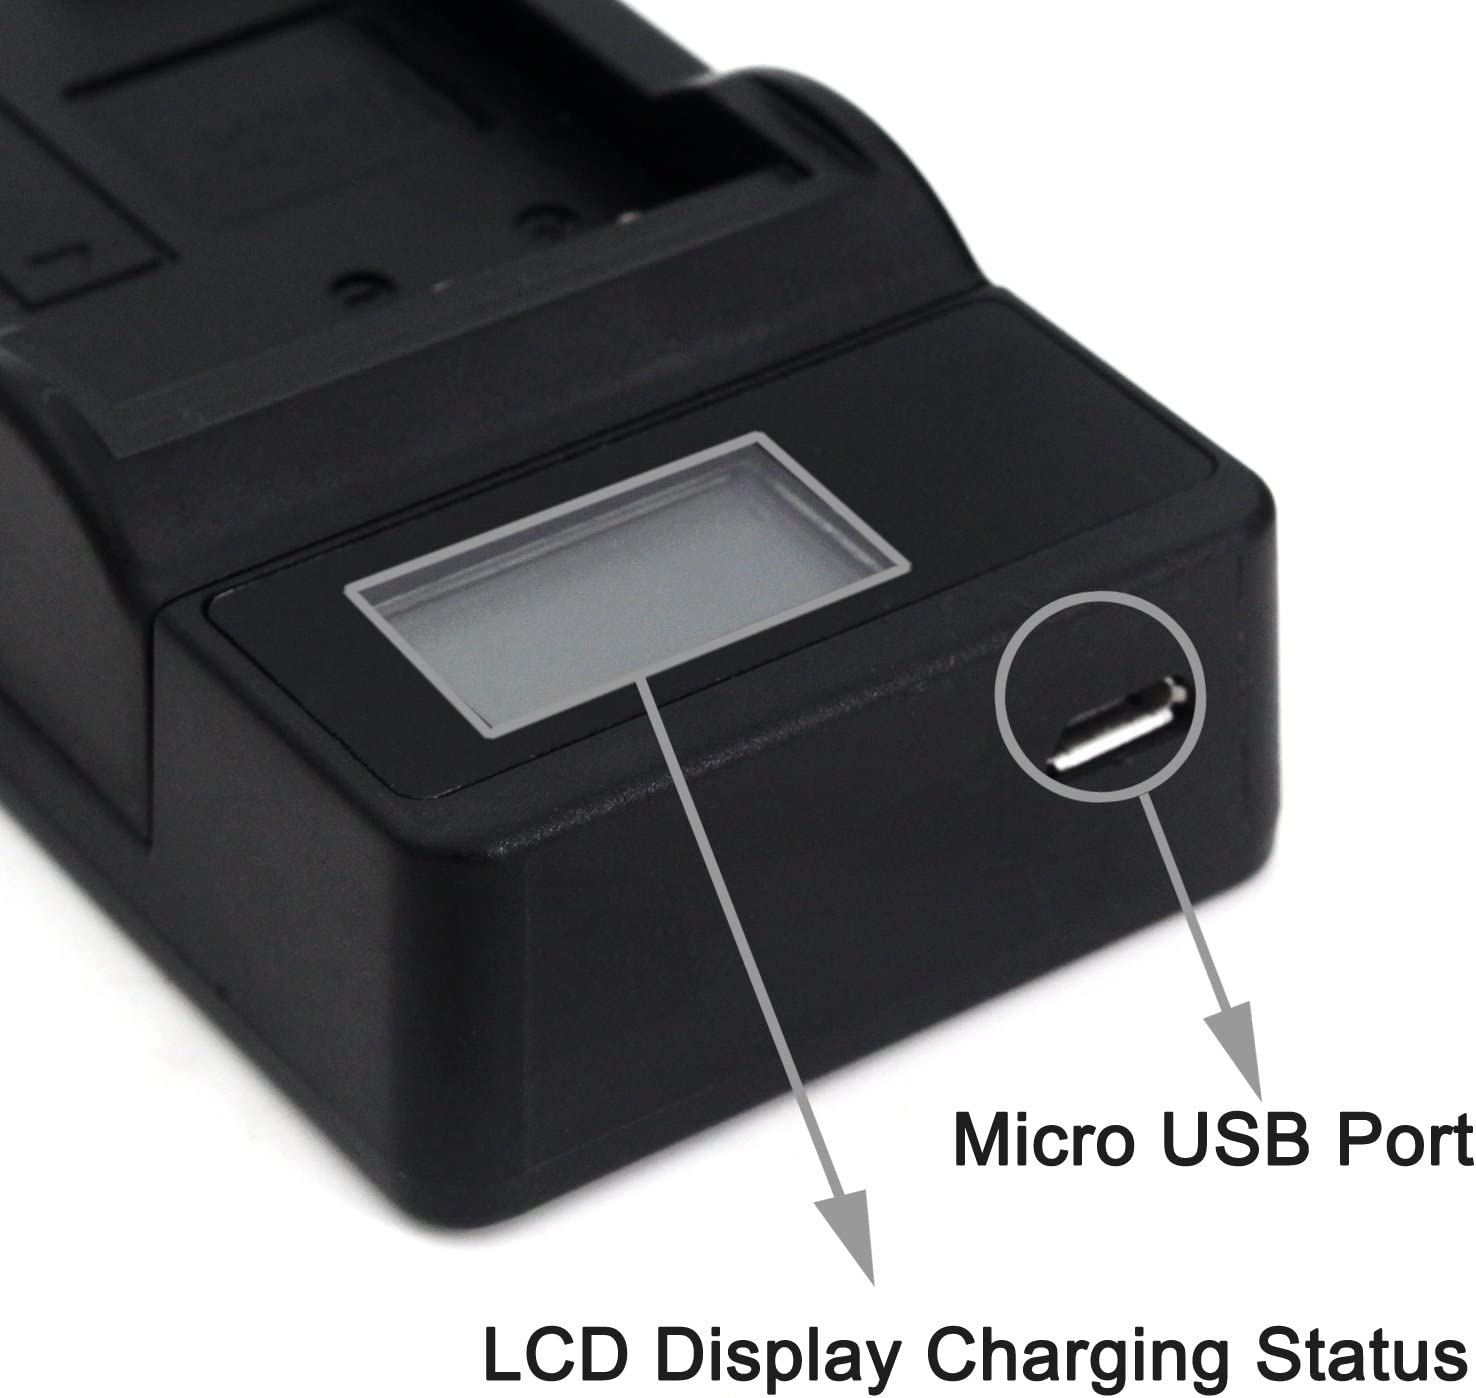 NP-140 LCD Slim USB Charger for Fujifilm FinePix S100FS Finepix S200EXR FinePix S200FS FinePix S205EXR